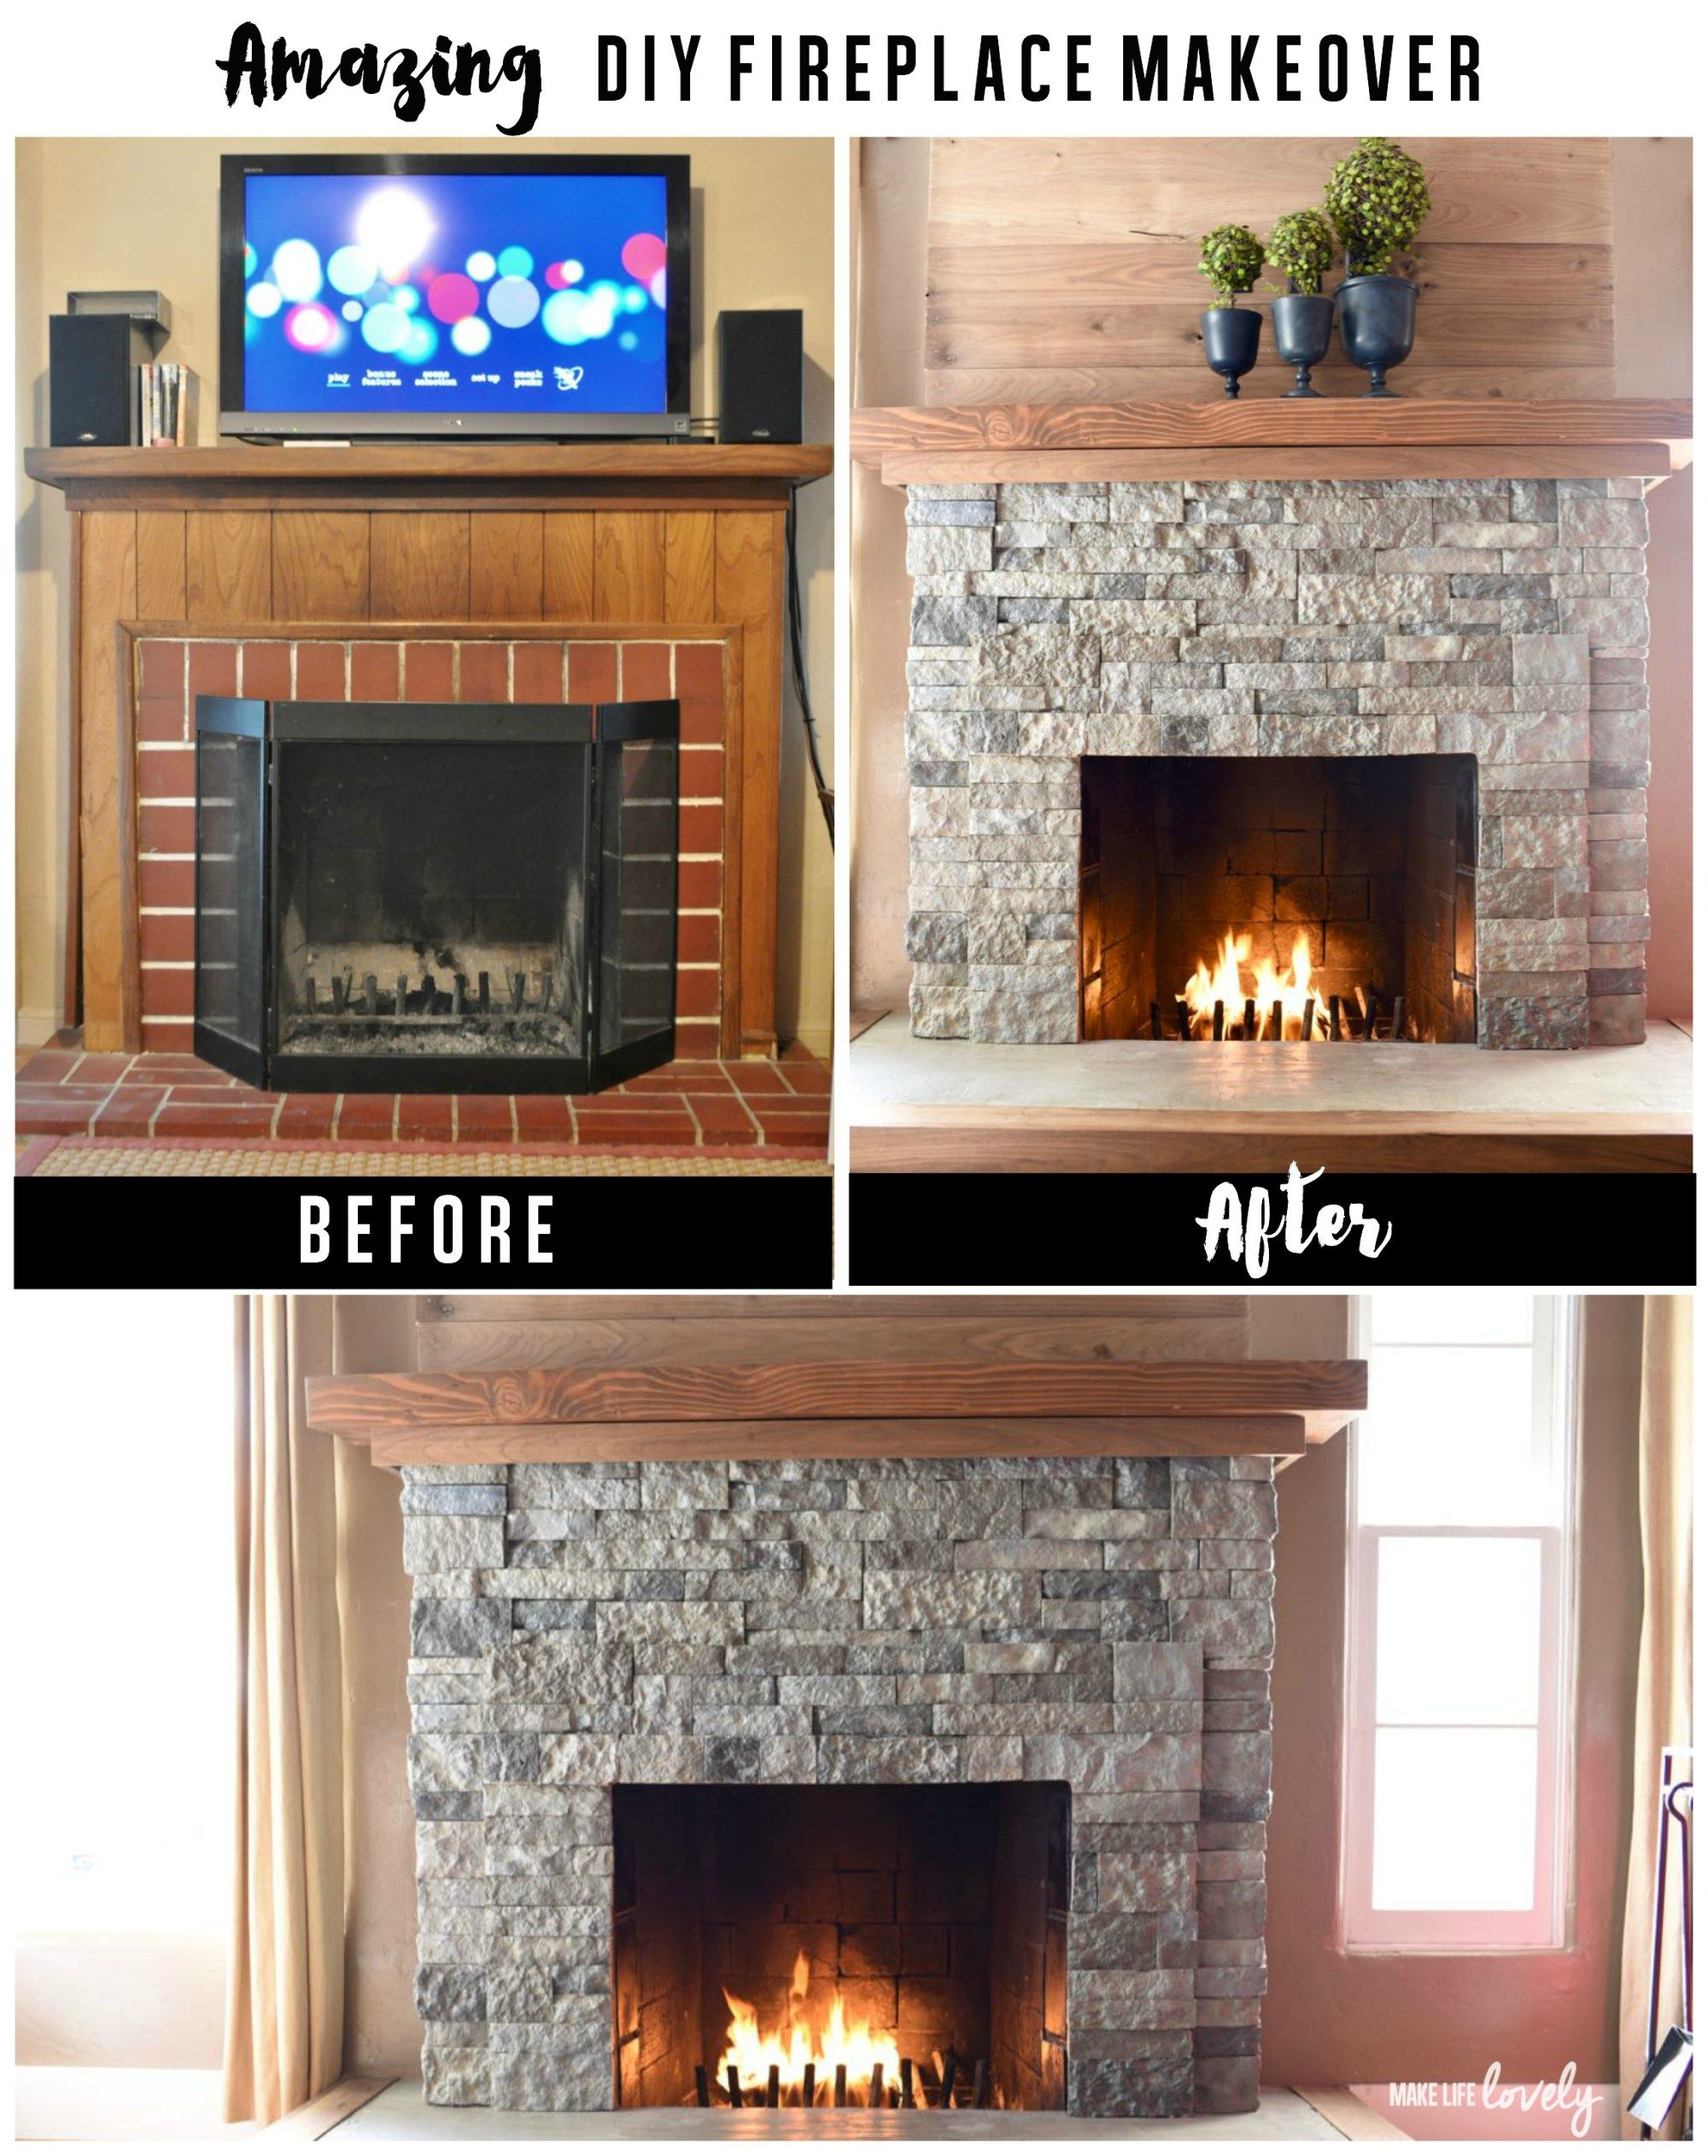 Airstone fireplace makeover from ugly to incredible fireplace